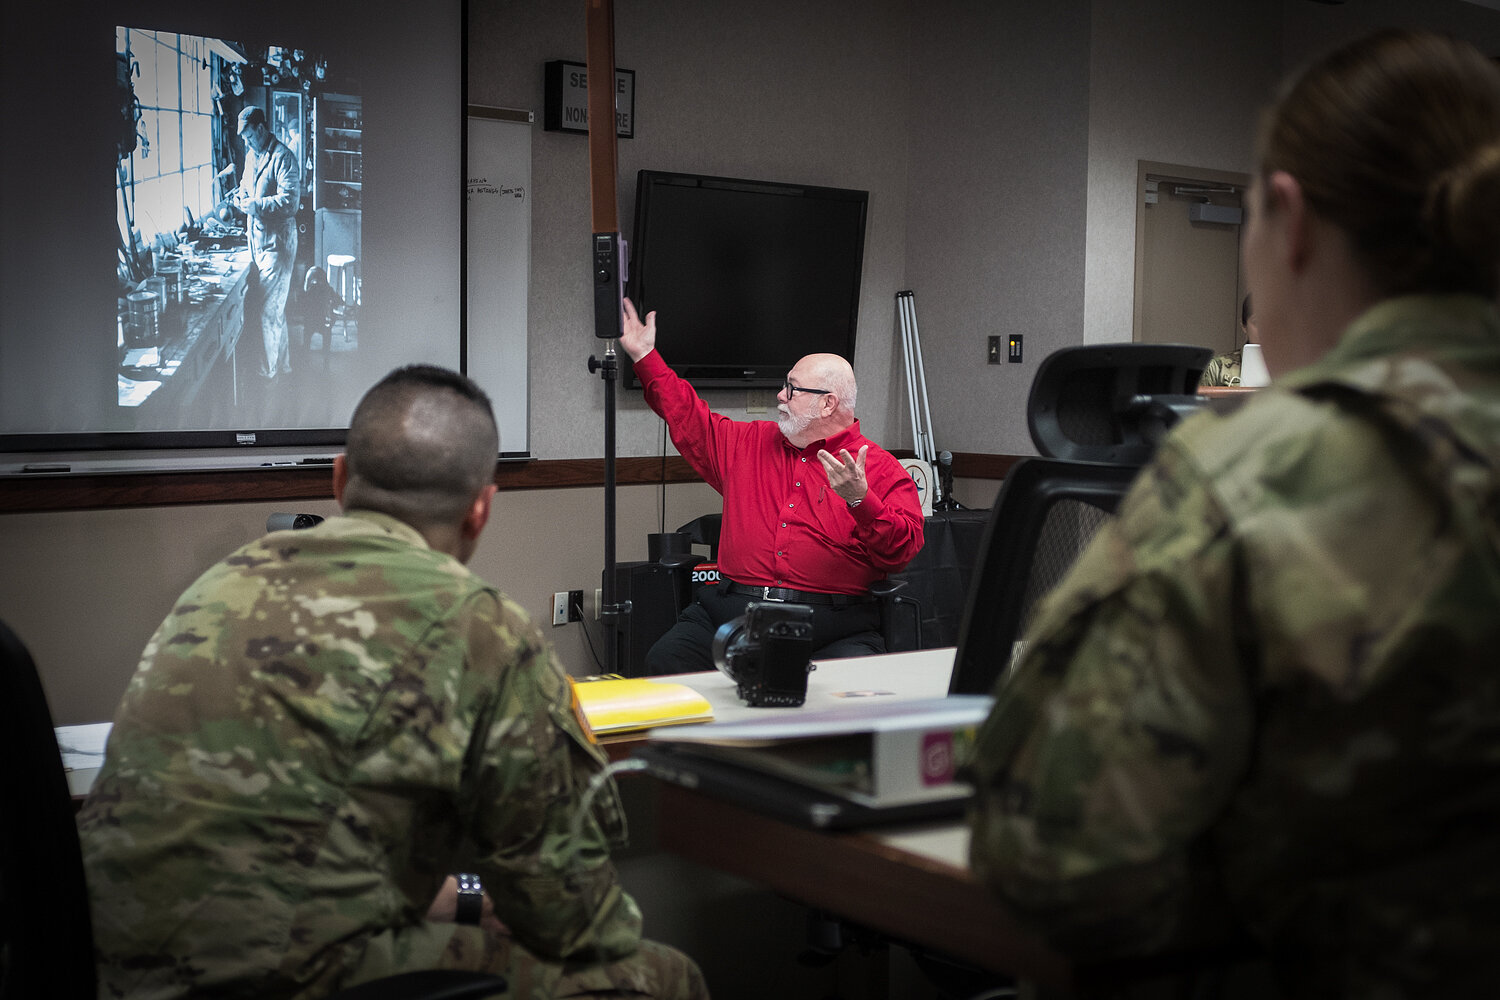 Terry Clark teaching portraiture to US Army Reserve photographers